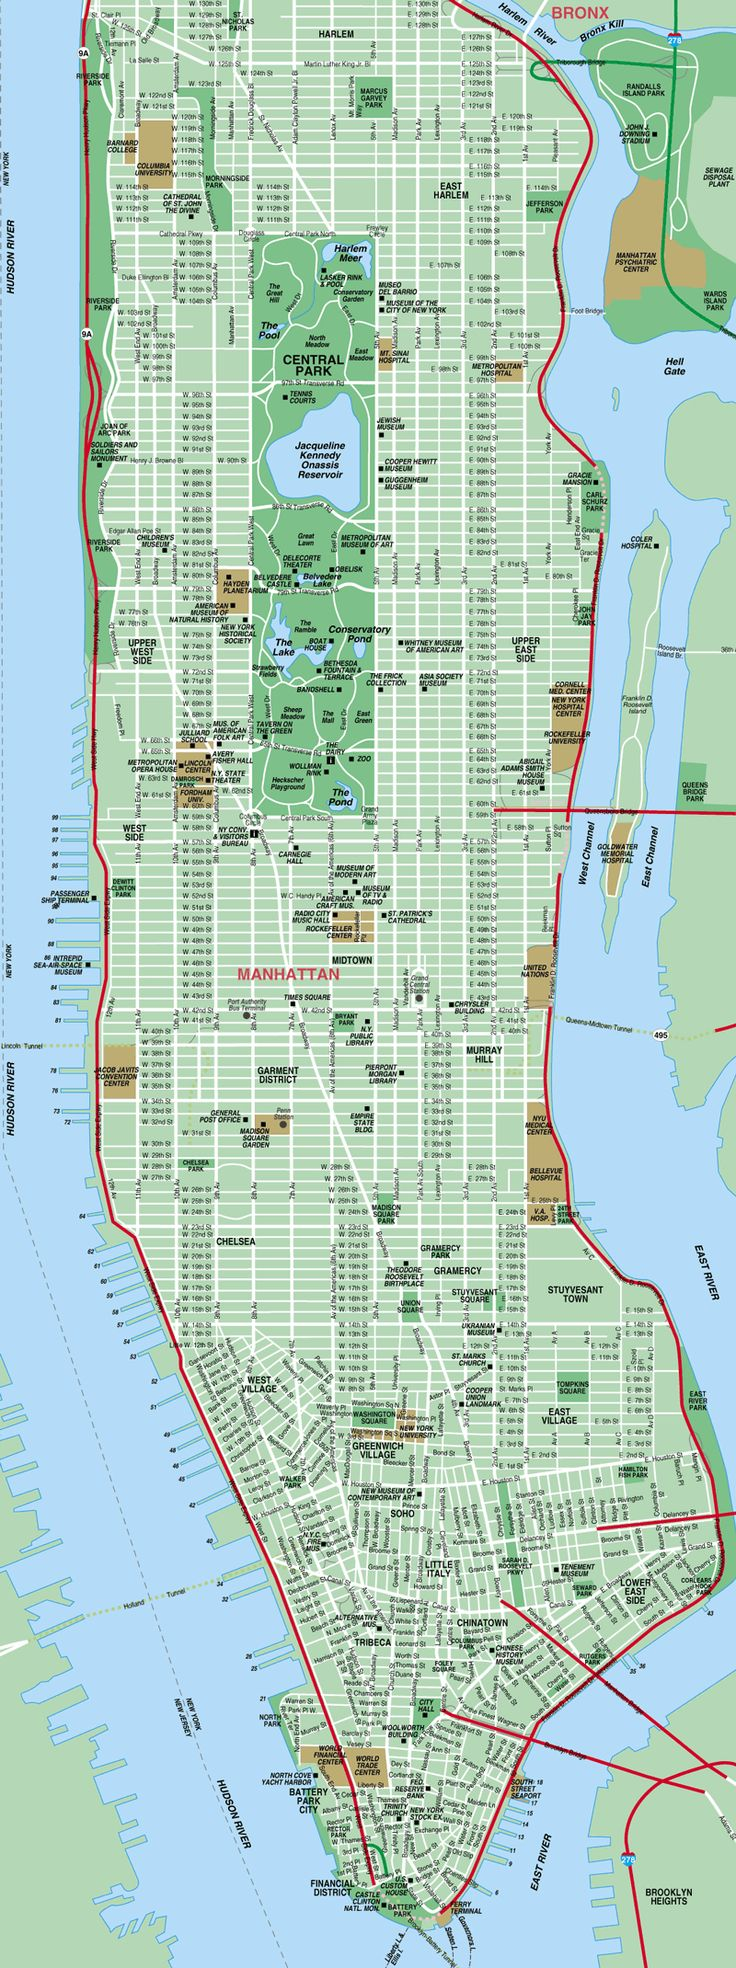 Printable Map of Manhattan | The International House is just to the northwest of Columbia ...